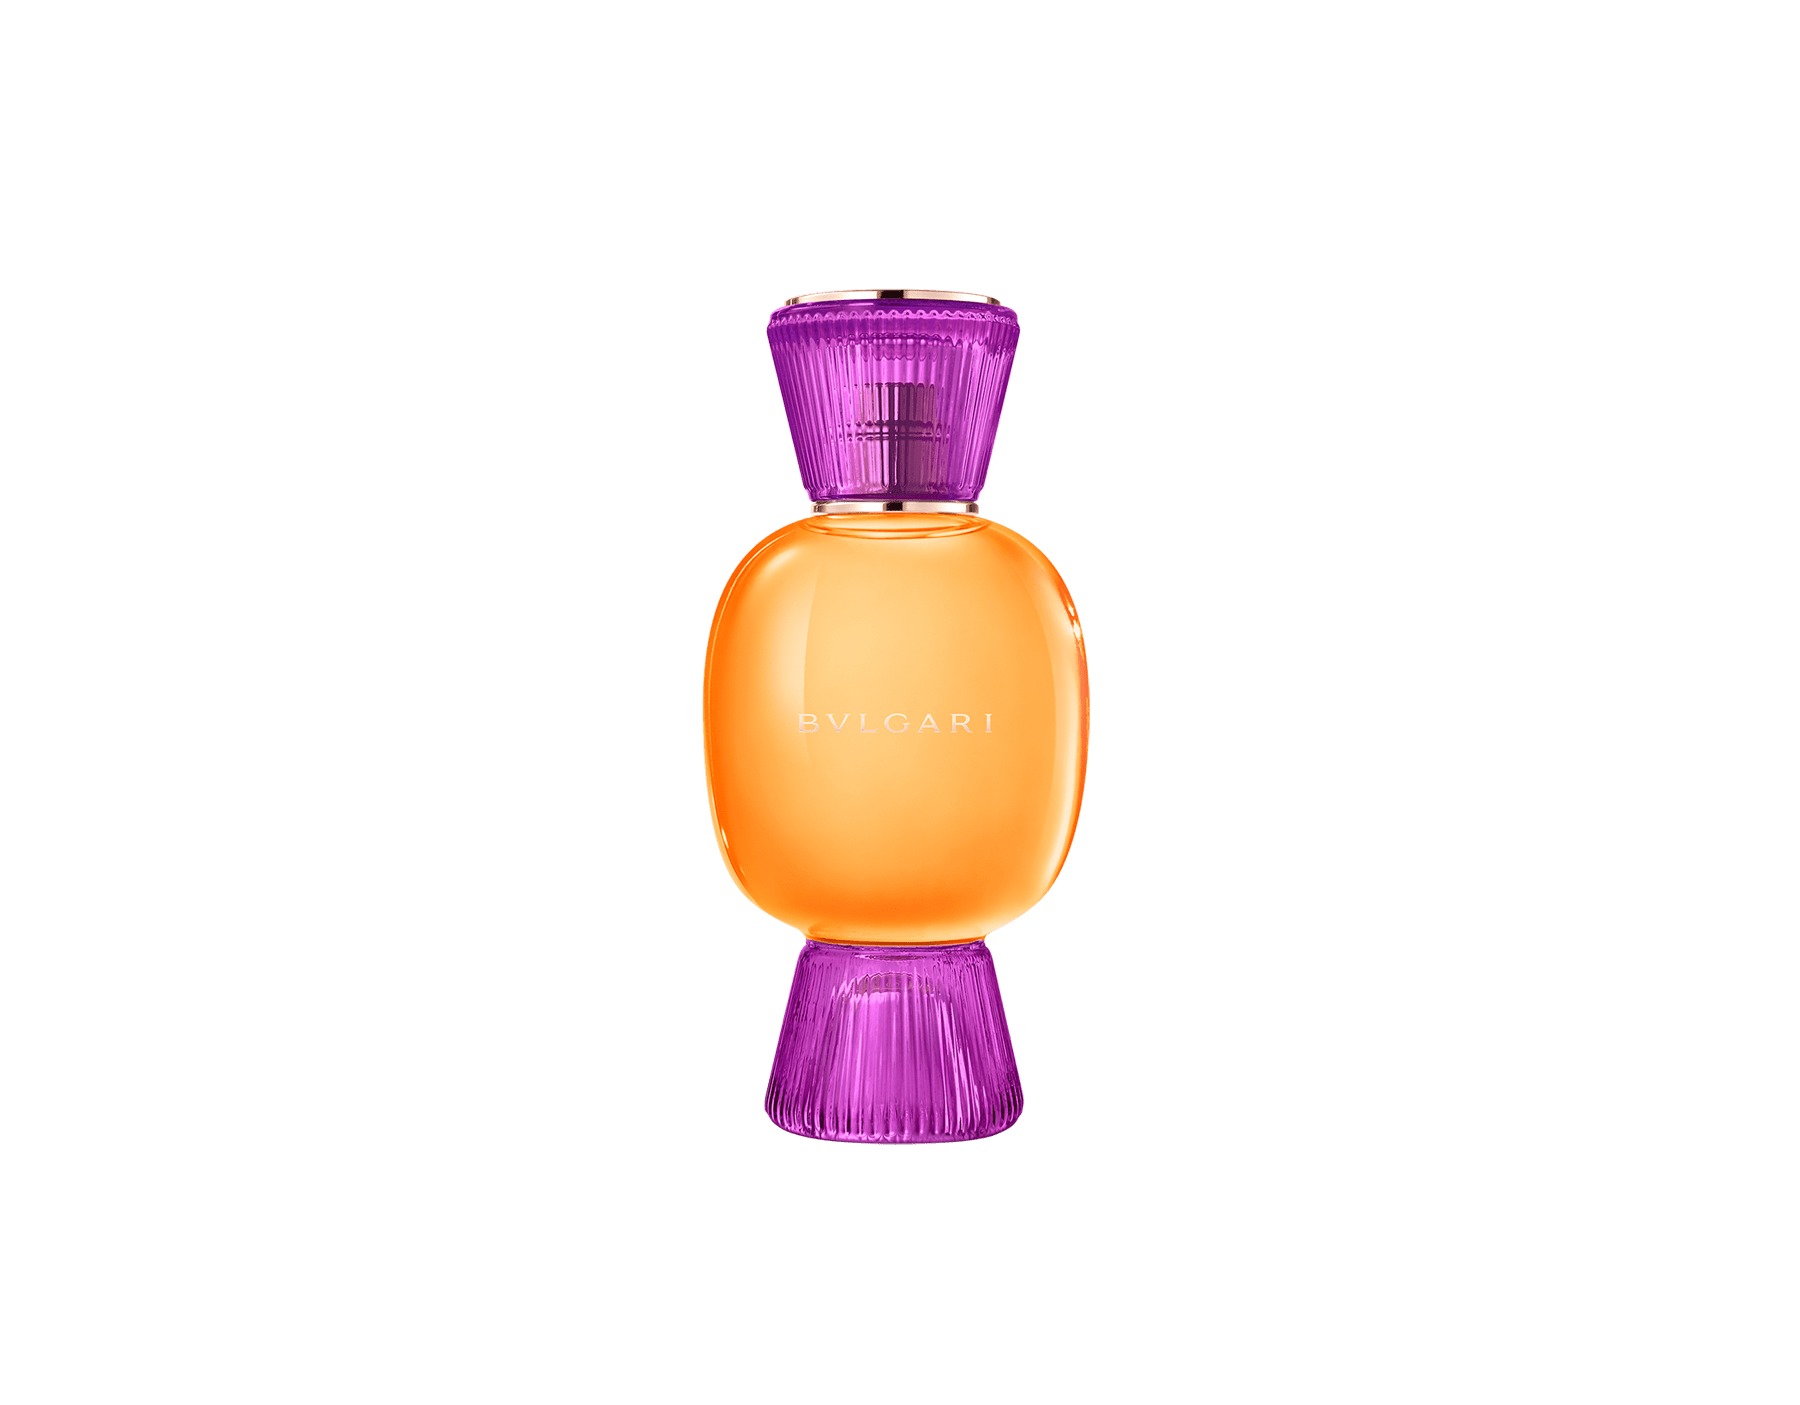 An exclusive perfume set, as bold and unique as you. The liquorous floriental Rock'n'Rome Allegra Eau de Parfum blends with the stark sensuality of the Magnifying Patchouli Essence, creating an irresistible personalised women's perfume. Perfume-Set-Rock-n-Rome-and-Patchouli-Magnifying image 2